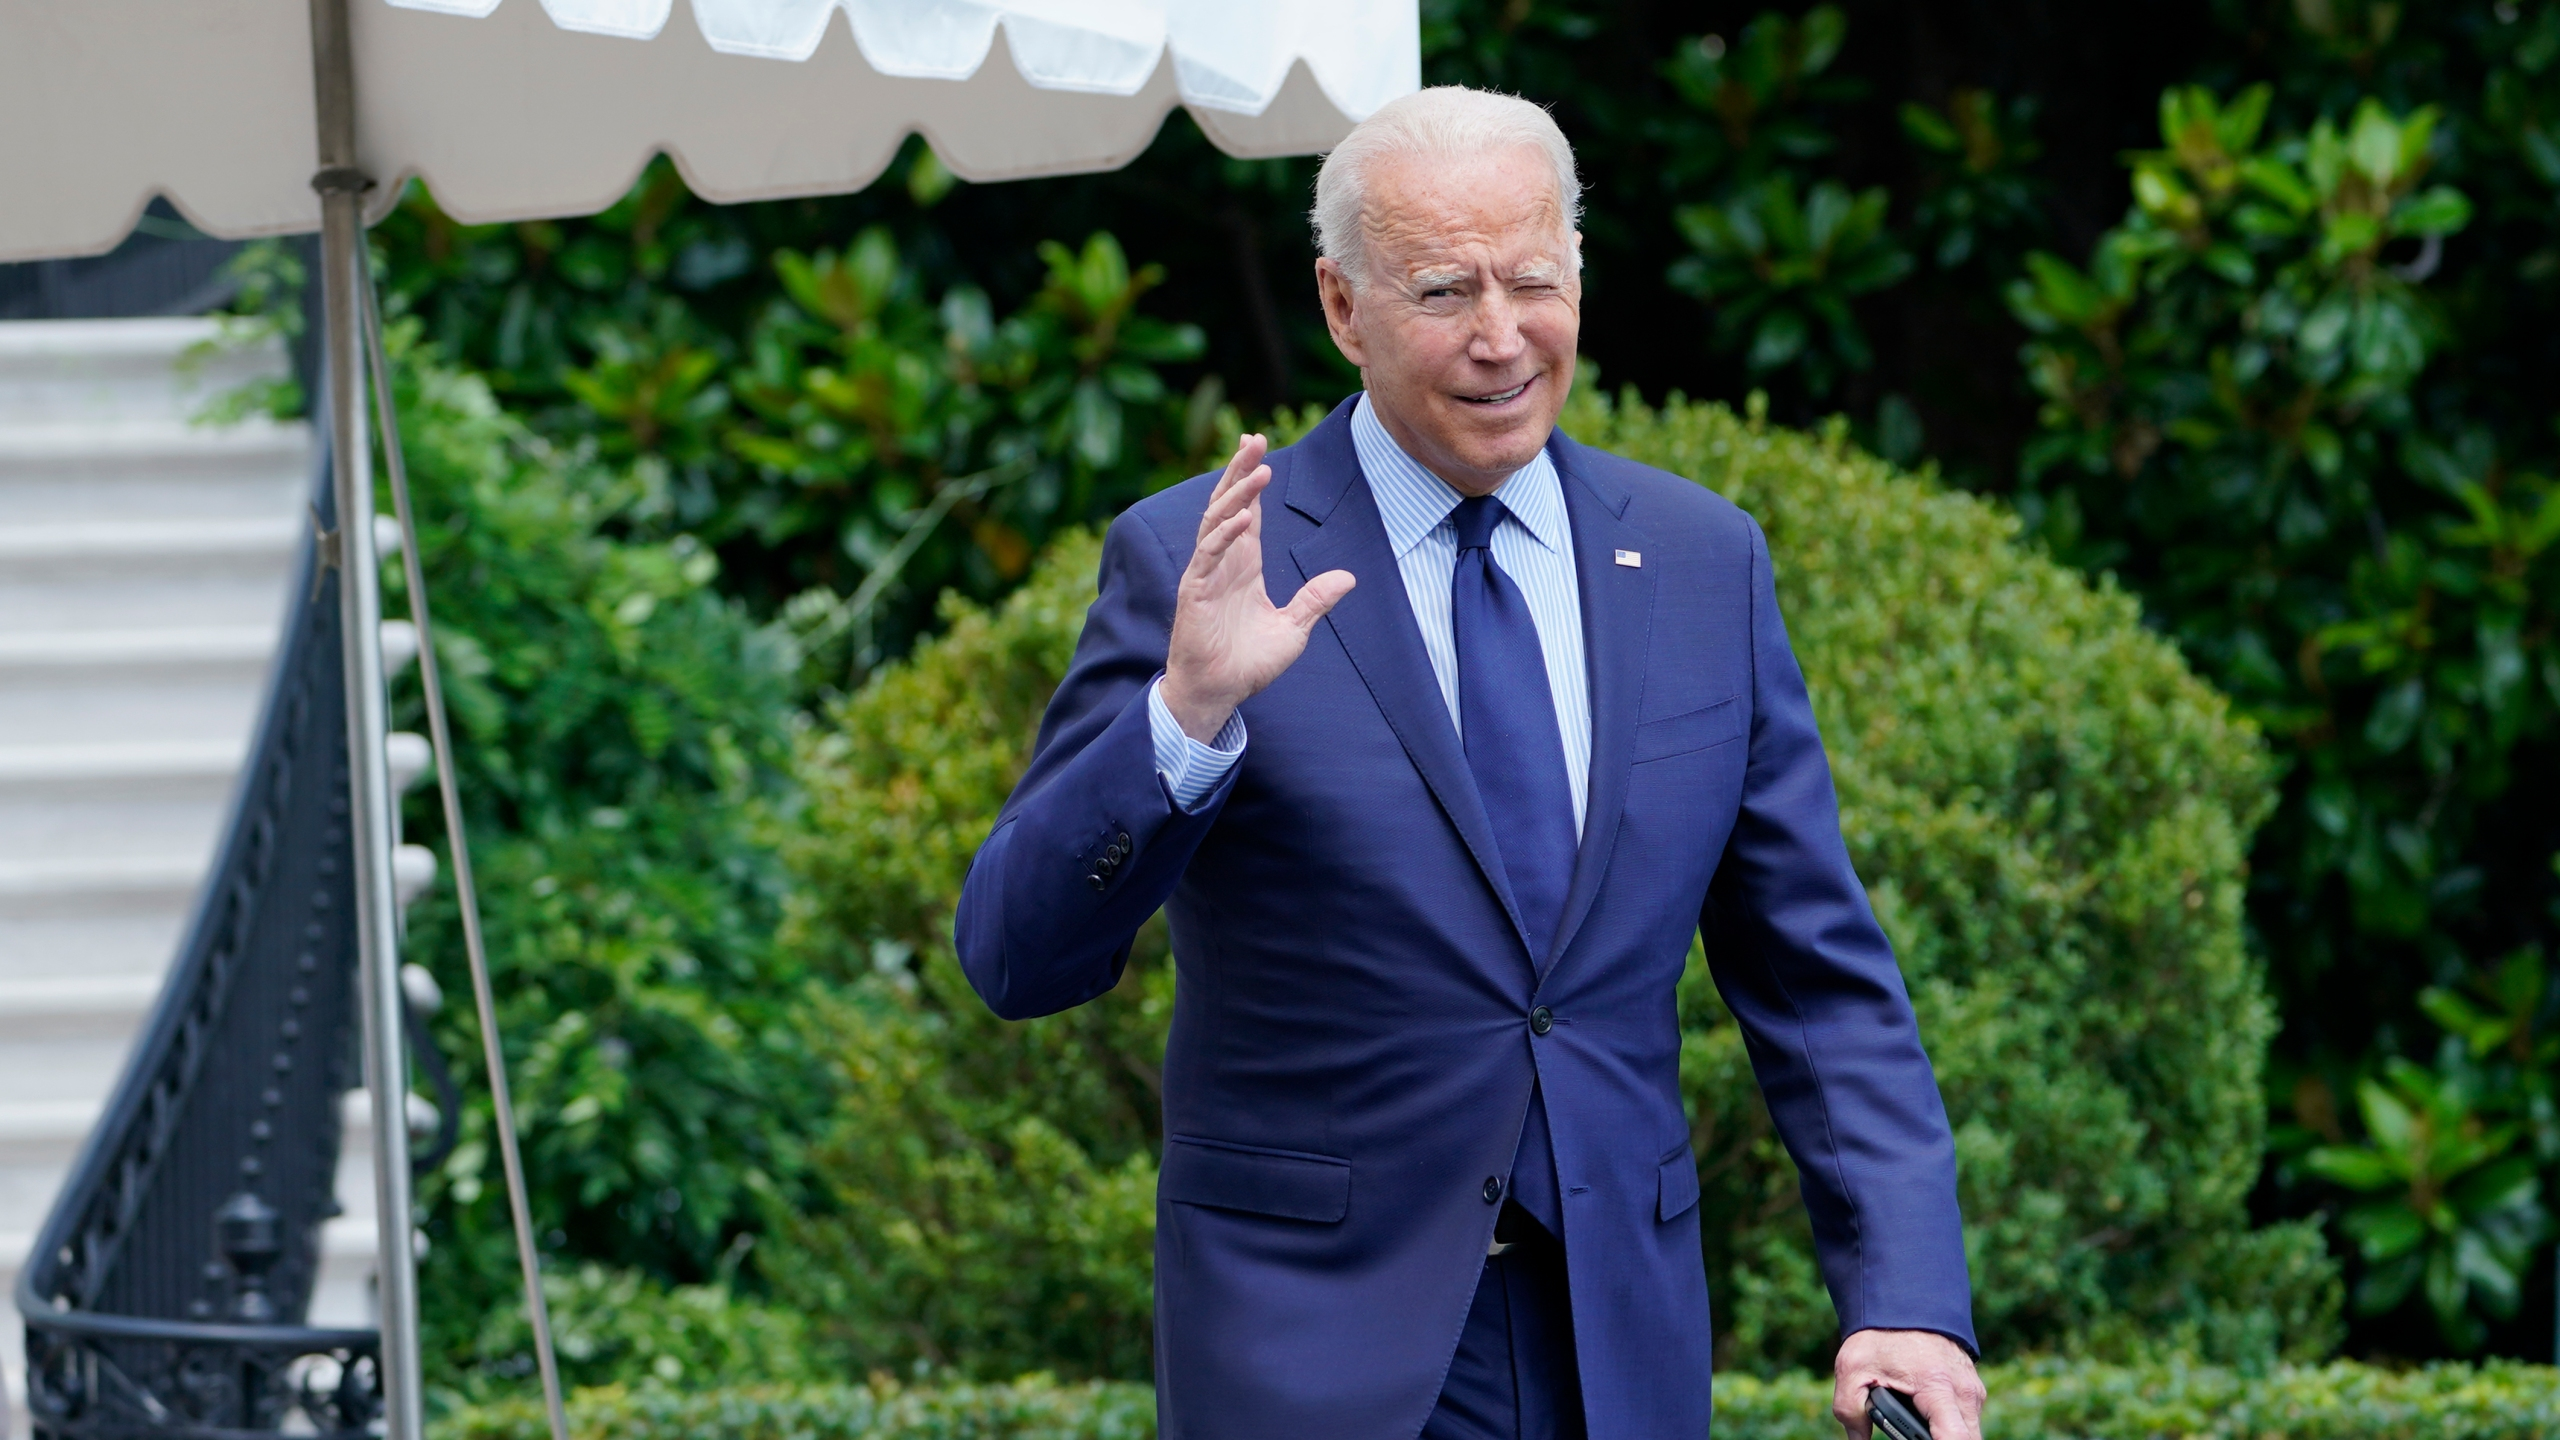 President Joe Biden tries to hear questions shouted by reporters as he heads to Marine One on the South Lawn of the White House in Washington, Friday, July 16, 2021, to spend the weekend at Camp David. (AP Photo/Susan Walsh)